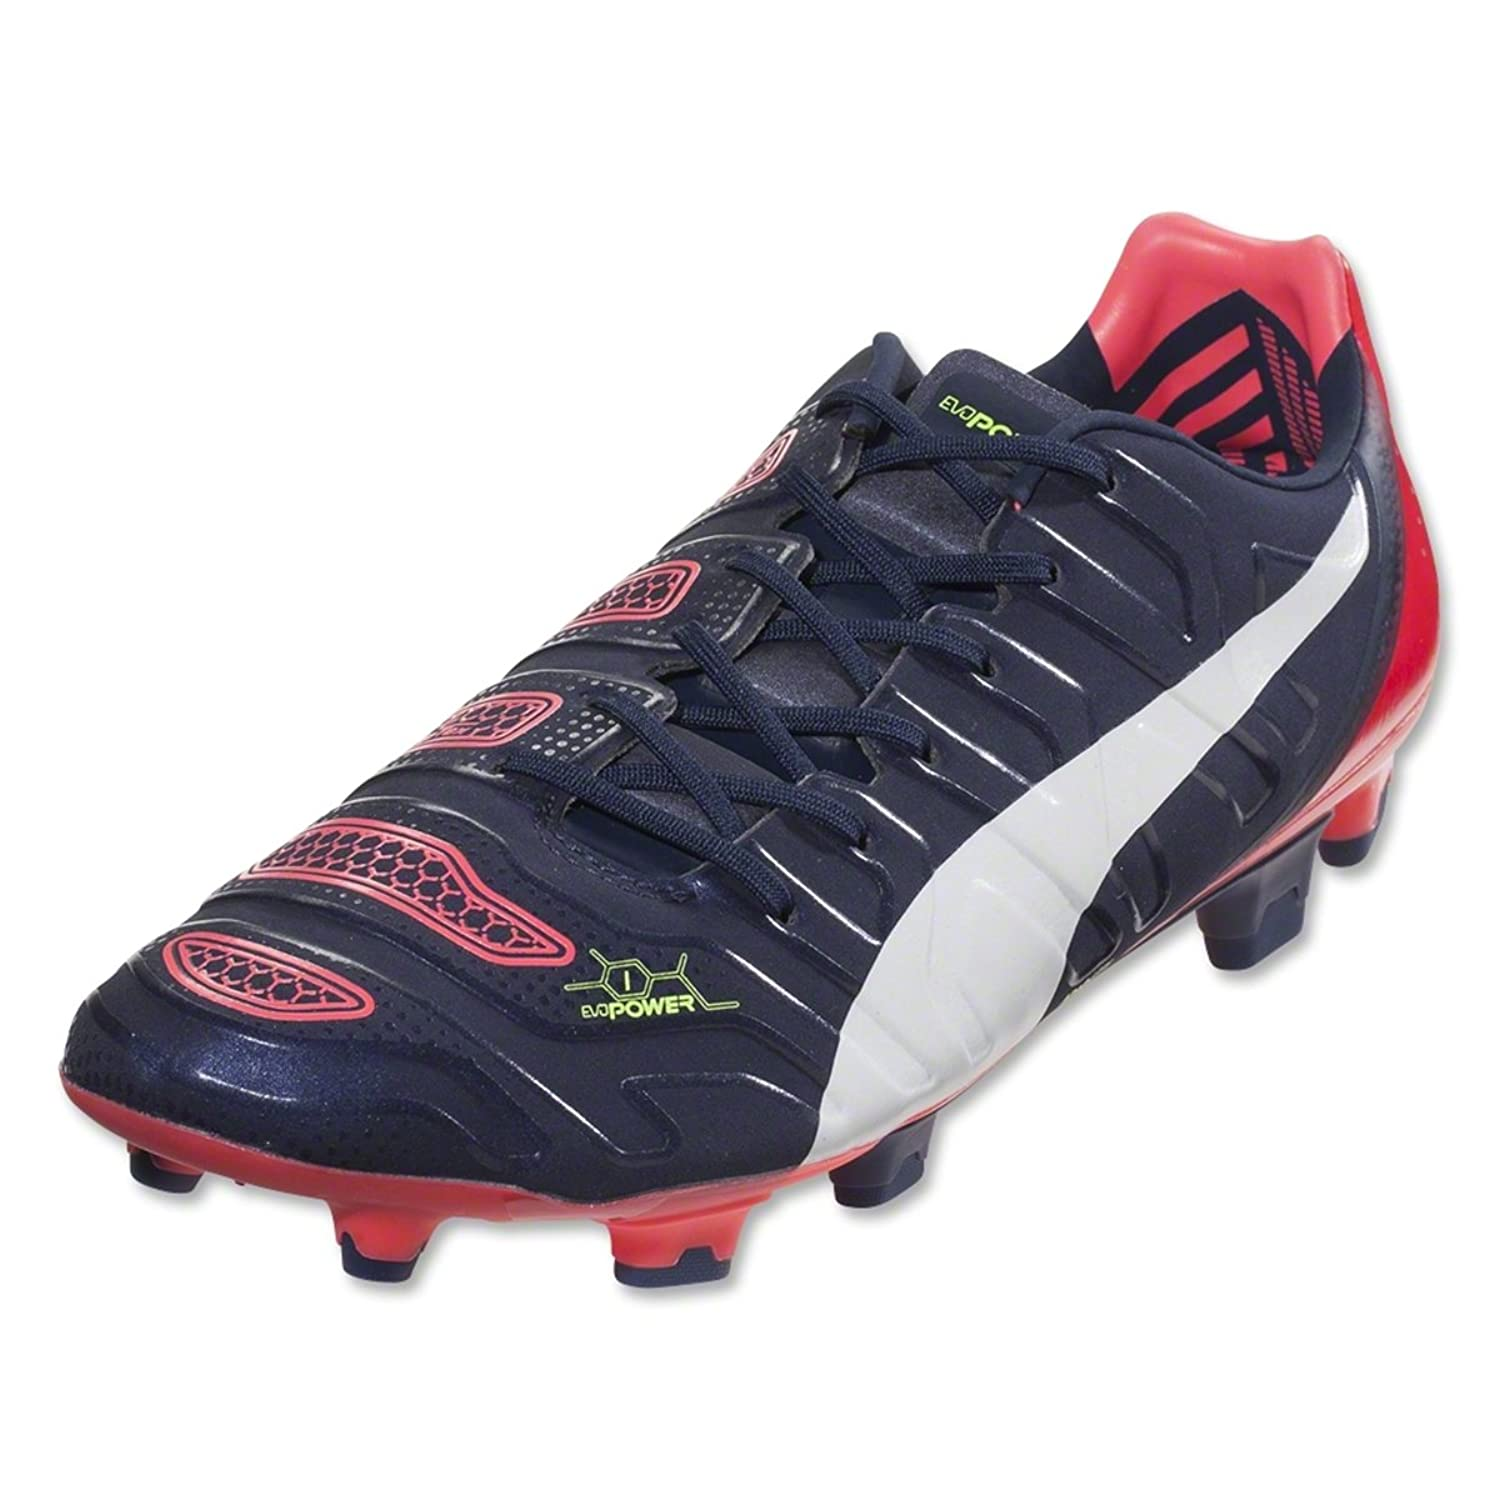 b7b8520b2c1 PUMA Evopower 1.2 FG (White Black Hawaiian Ocean)